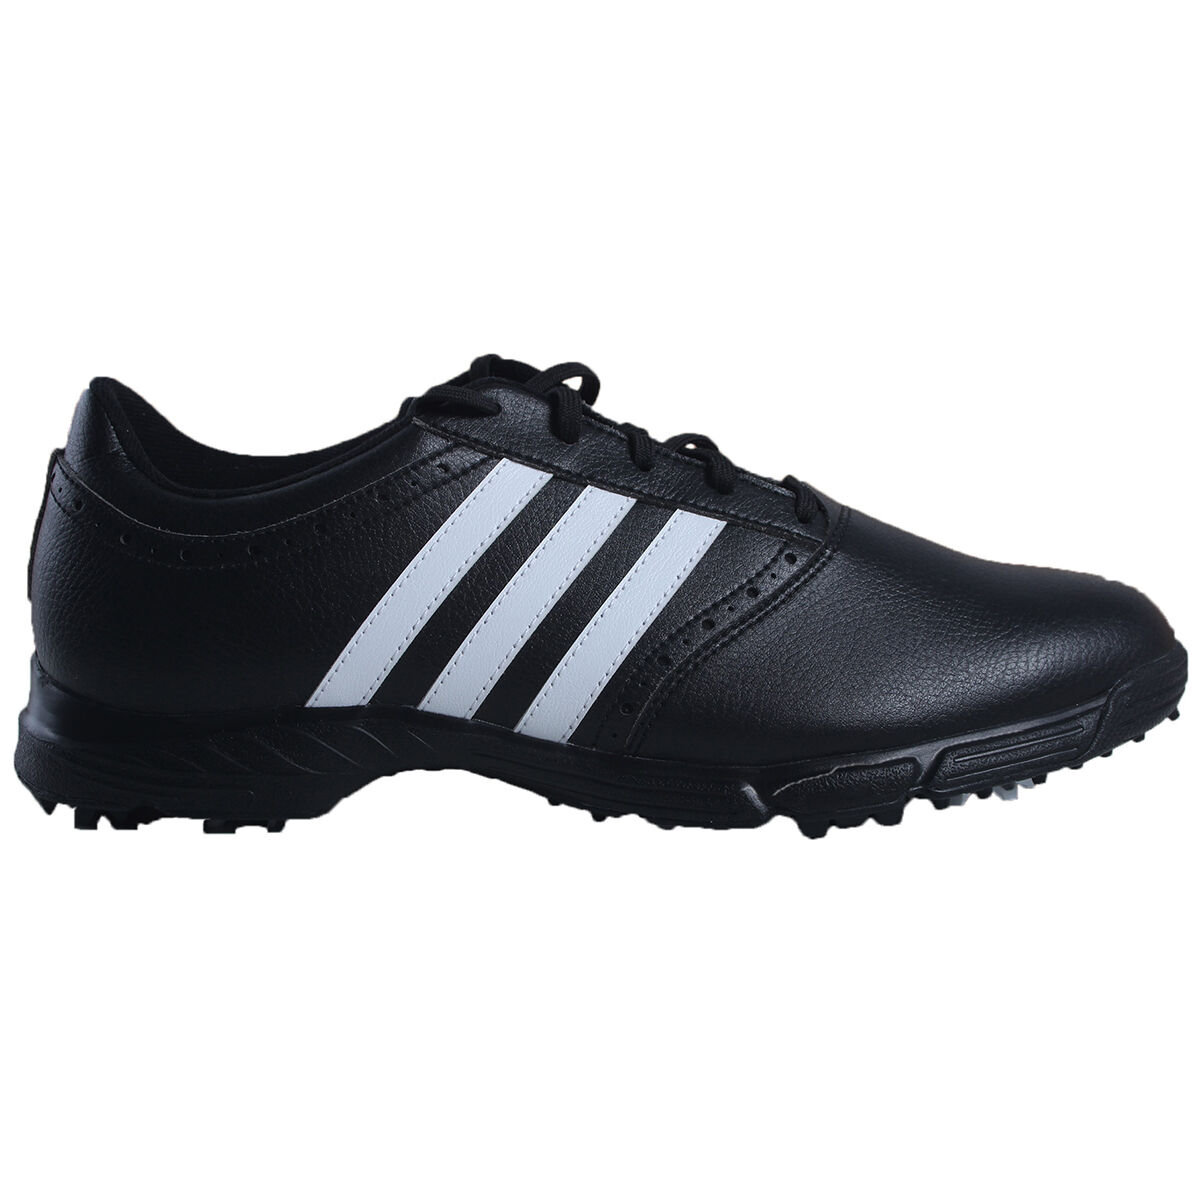 adidas traxion classic golf shoes